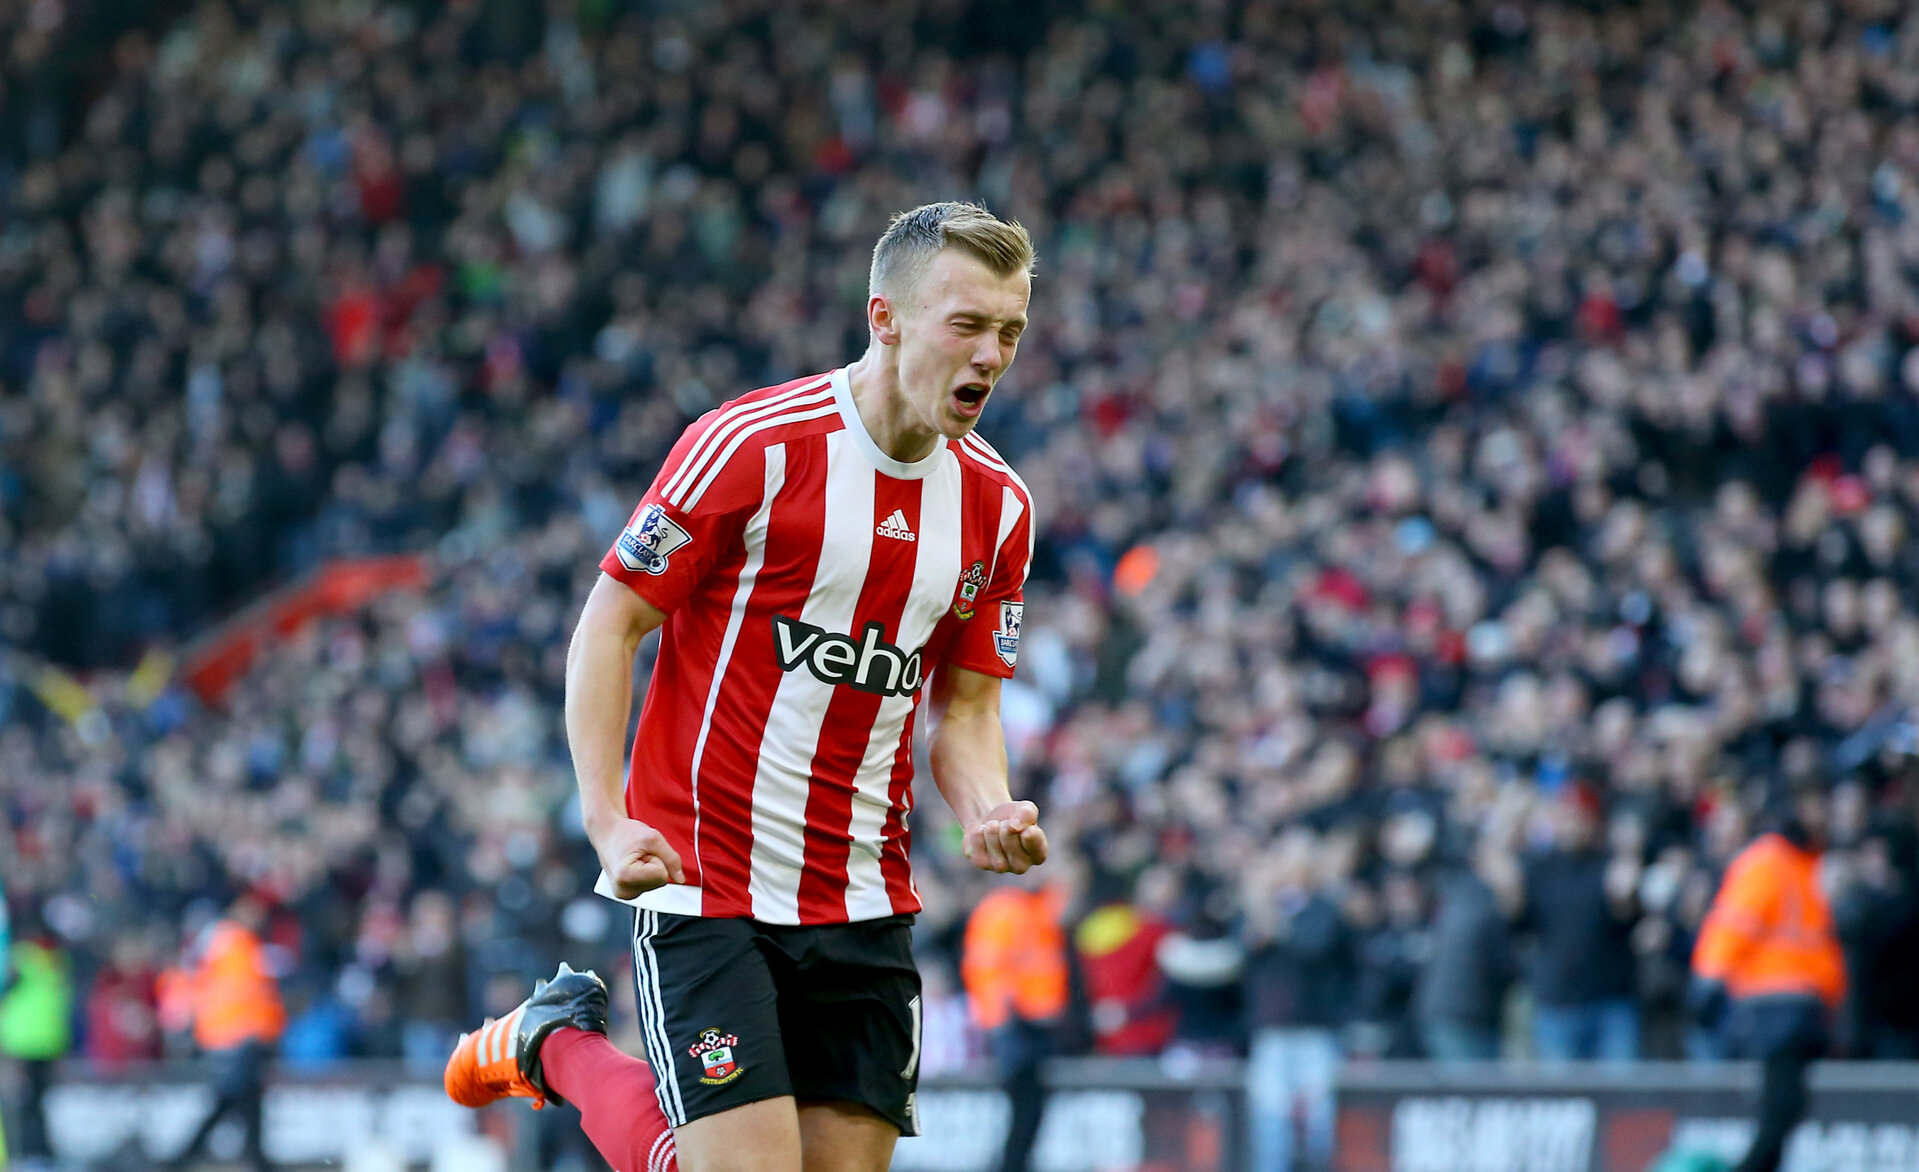 James Ward-Prowse celebrates during the Barclays Premier League match between Southampton and West Bromwich Albion at St Mary's Stadium, Southampton, England on 16 January 2016.